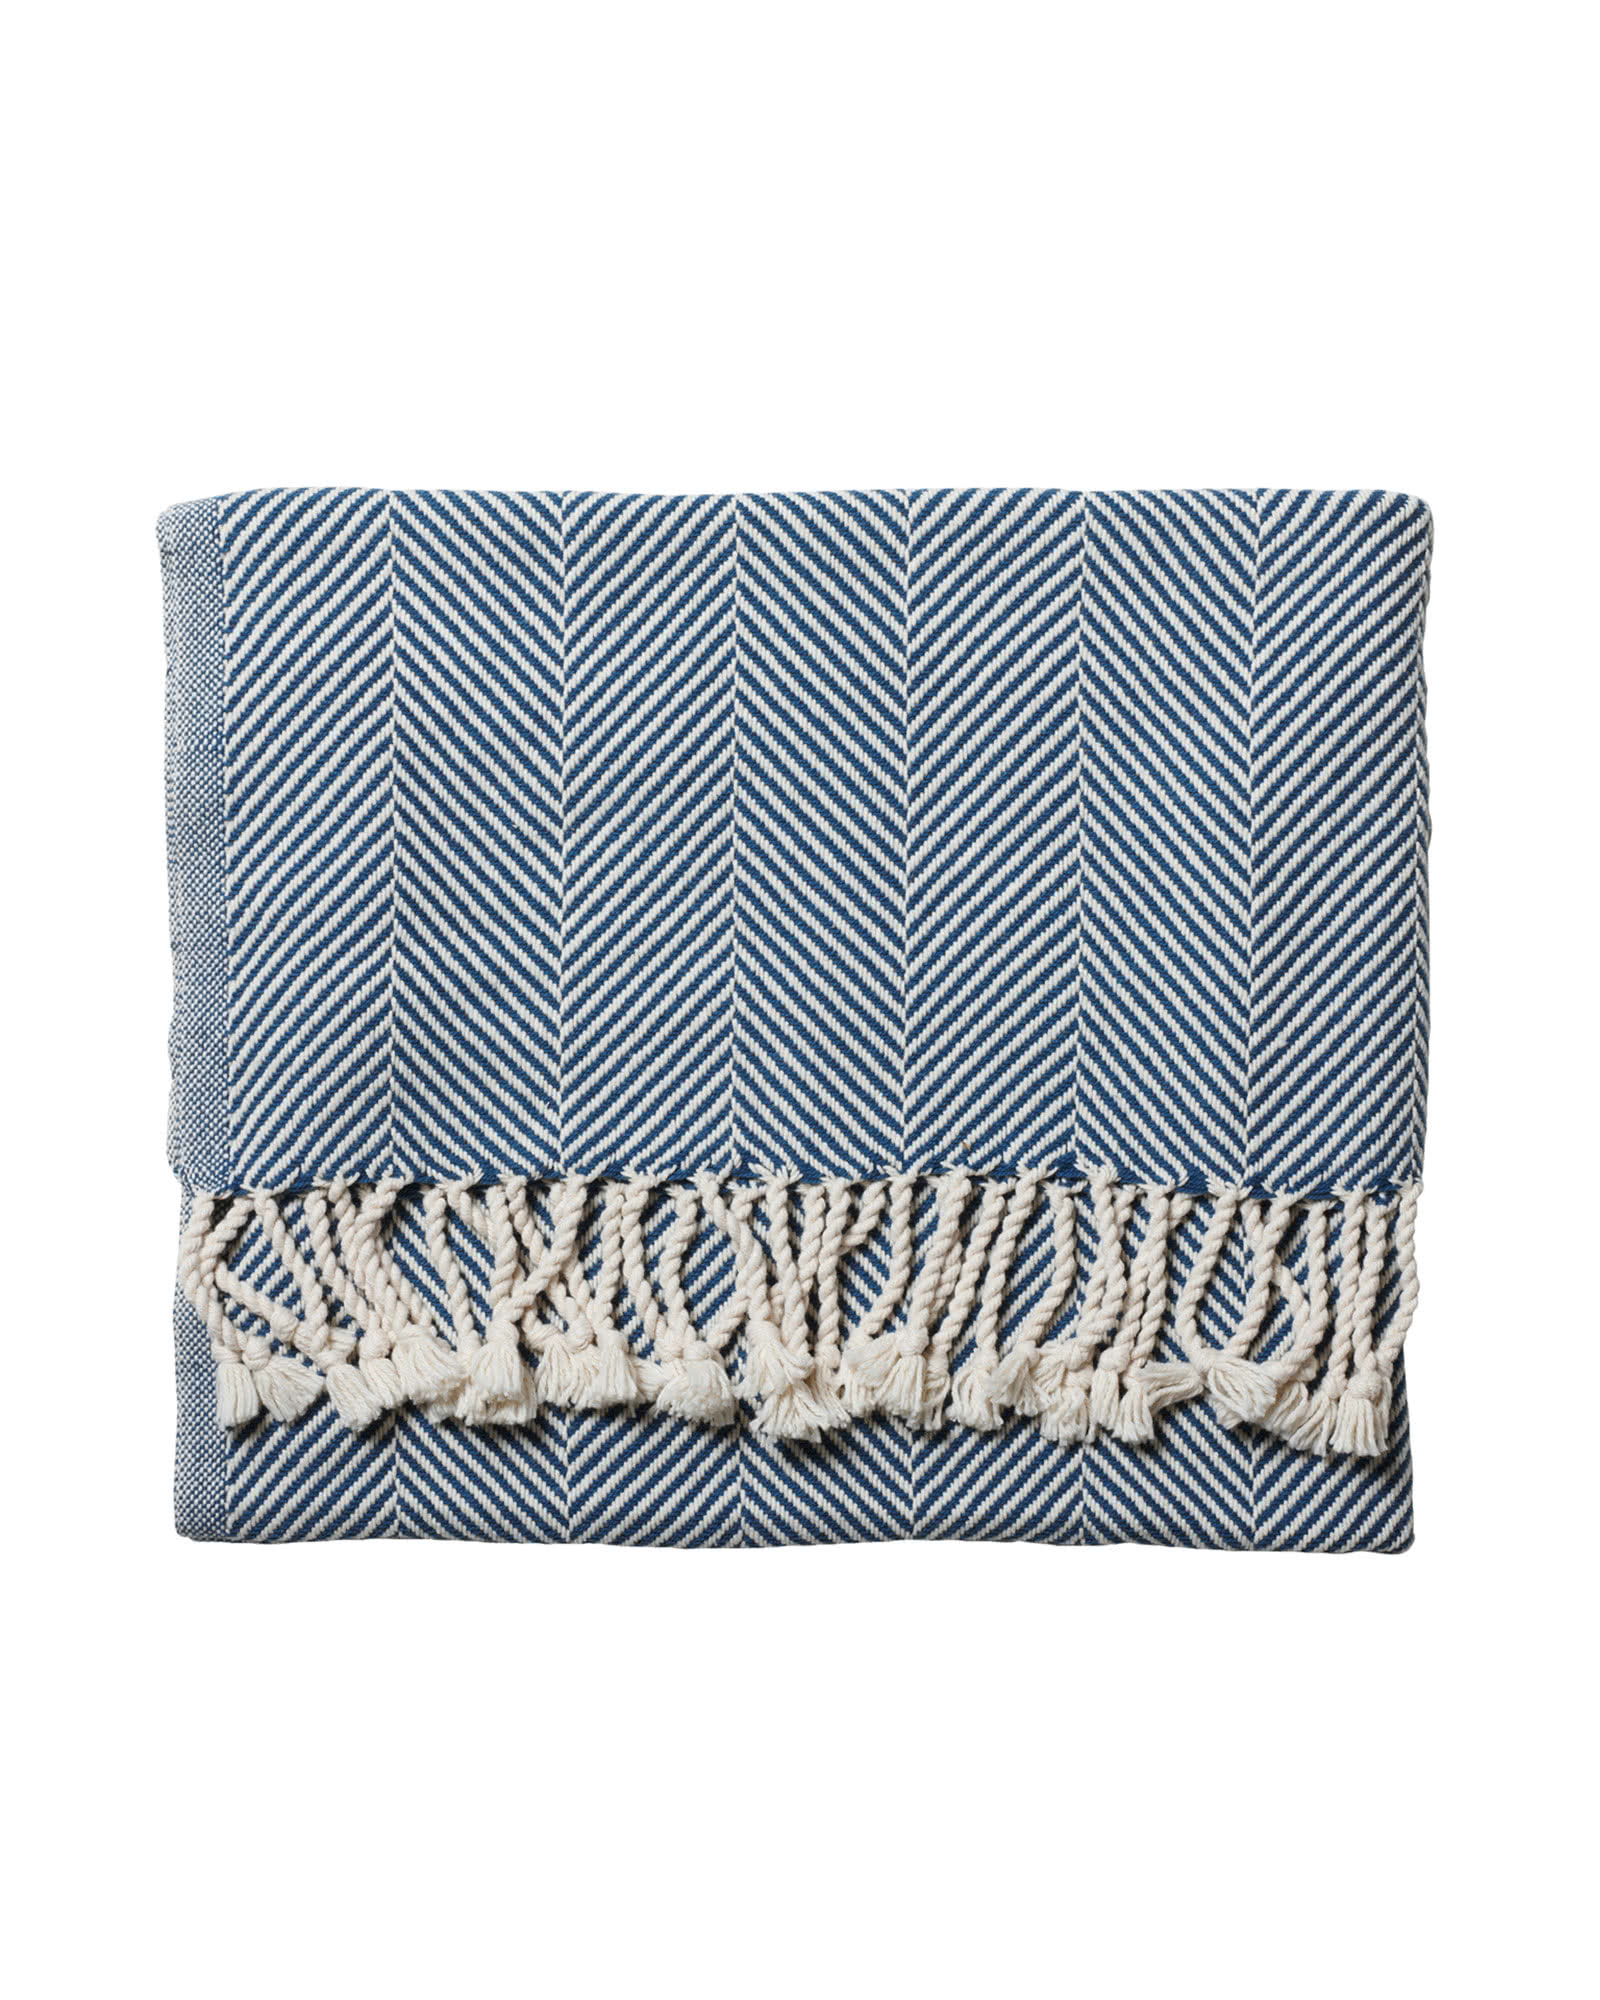 Brahms Mount Herringbone Throw, Indigo